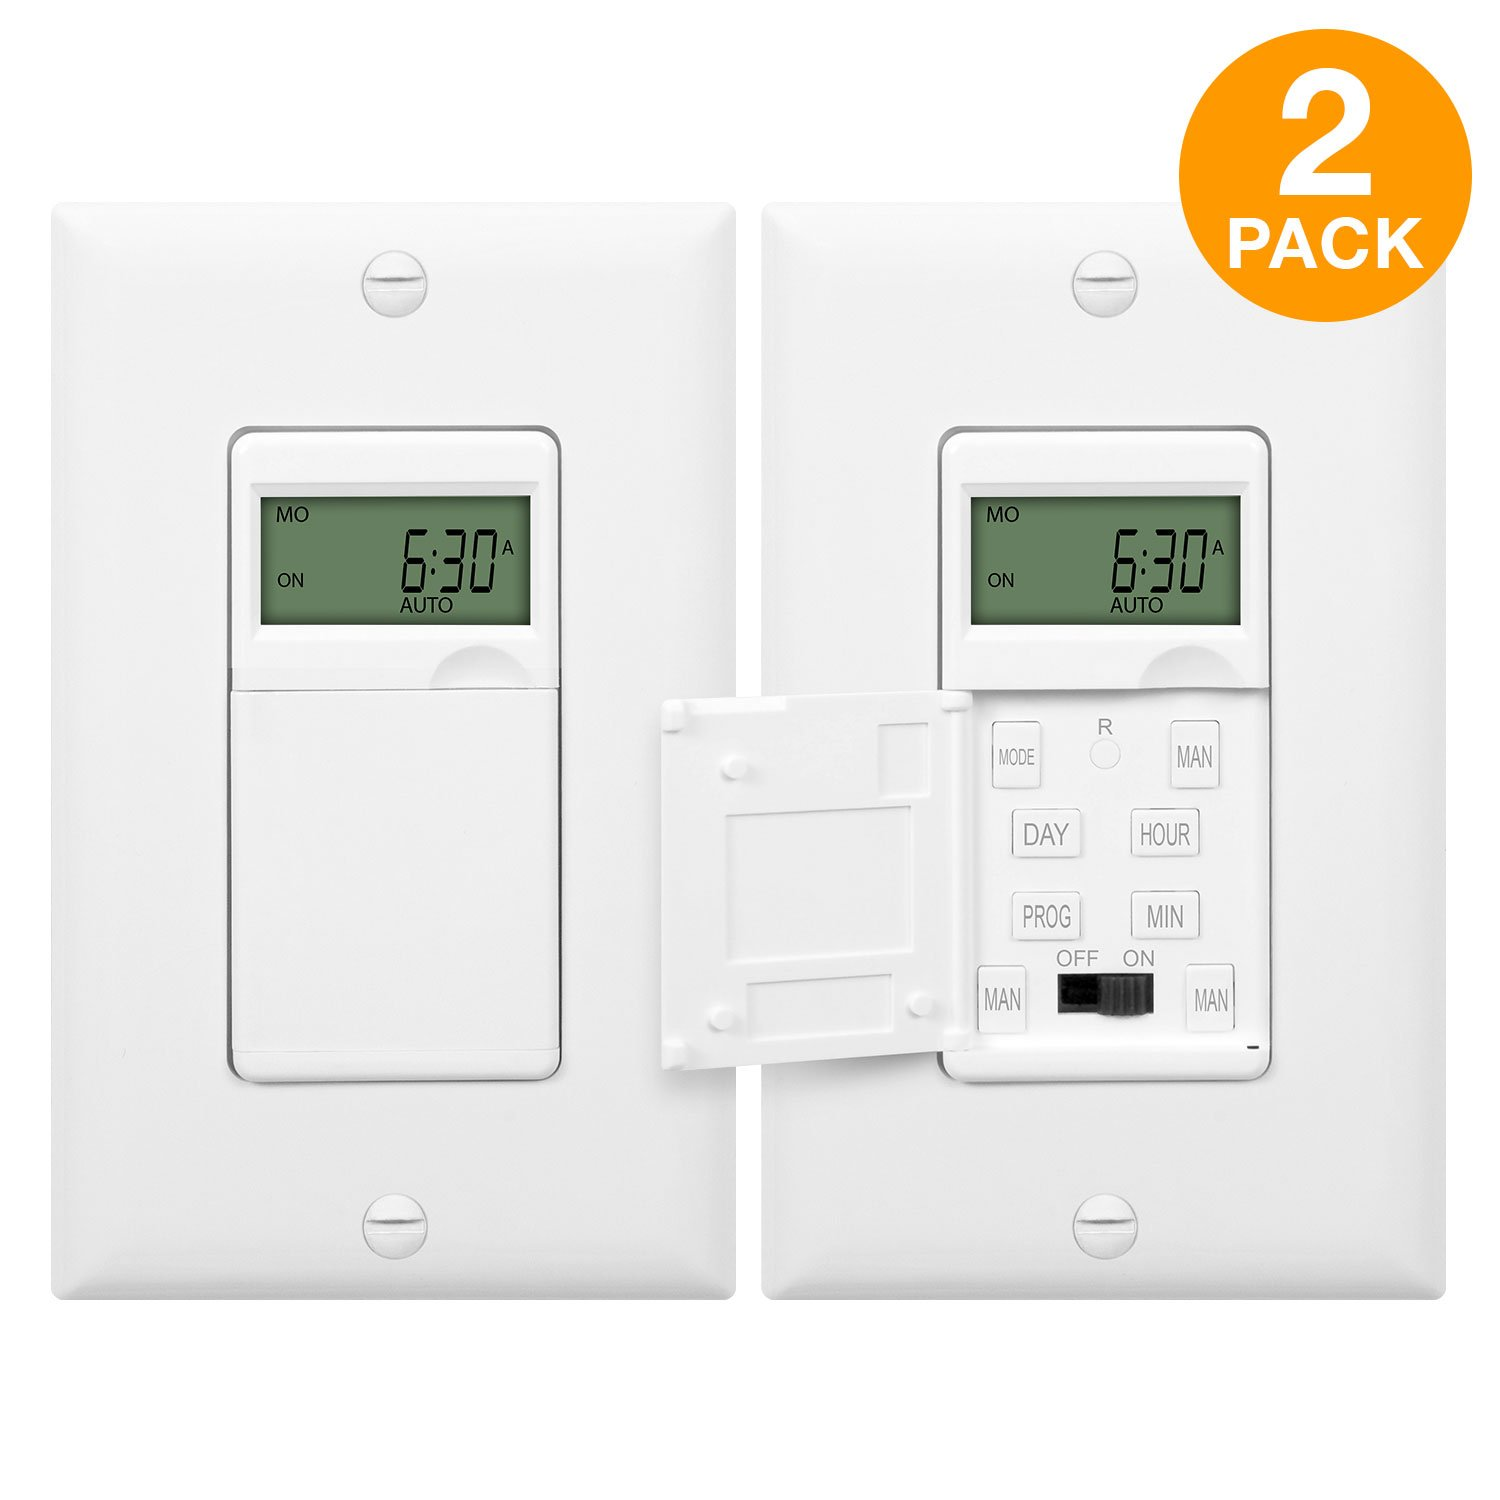 ENERLITES Programmable Timer Switch Digital Timer Switch for Lights, Fans, Motors, Timer in wall, 7-Day 18 ON/OFF Timer Settings, NEUTRAL WIRE REQUIRED, HET01-C, White, 2 Pack